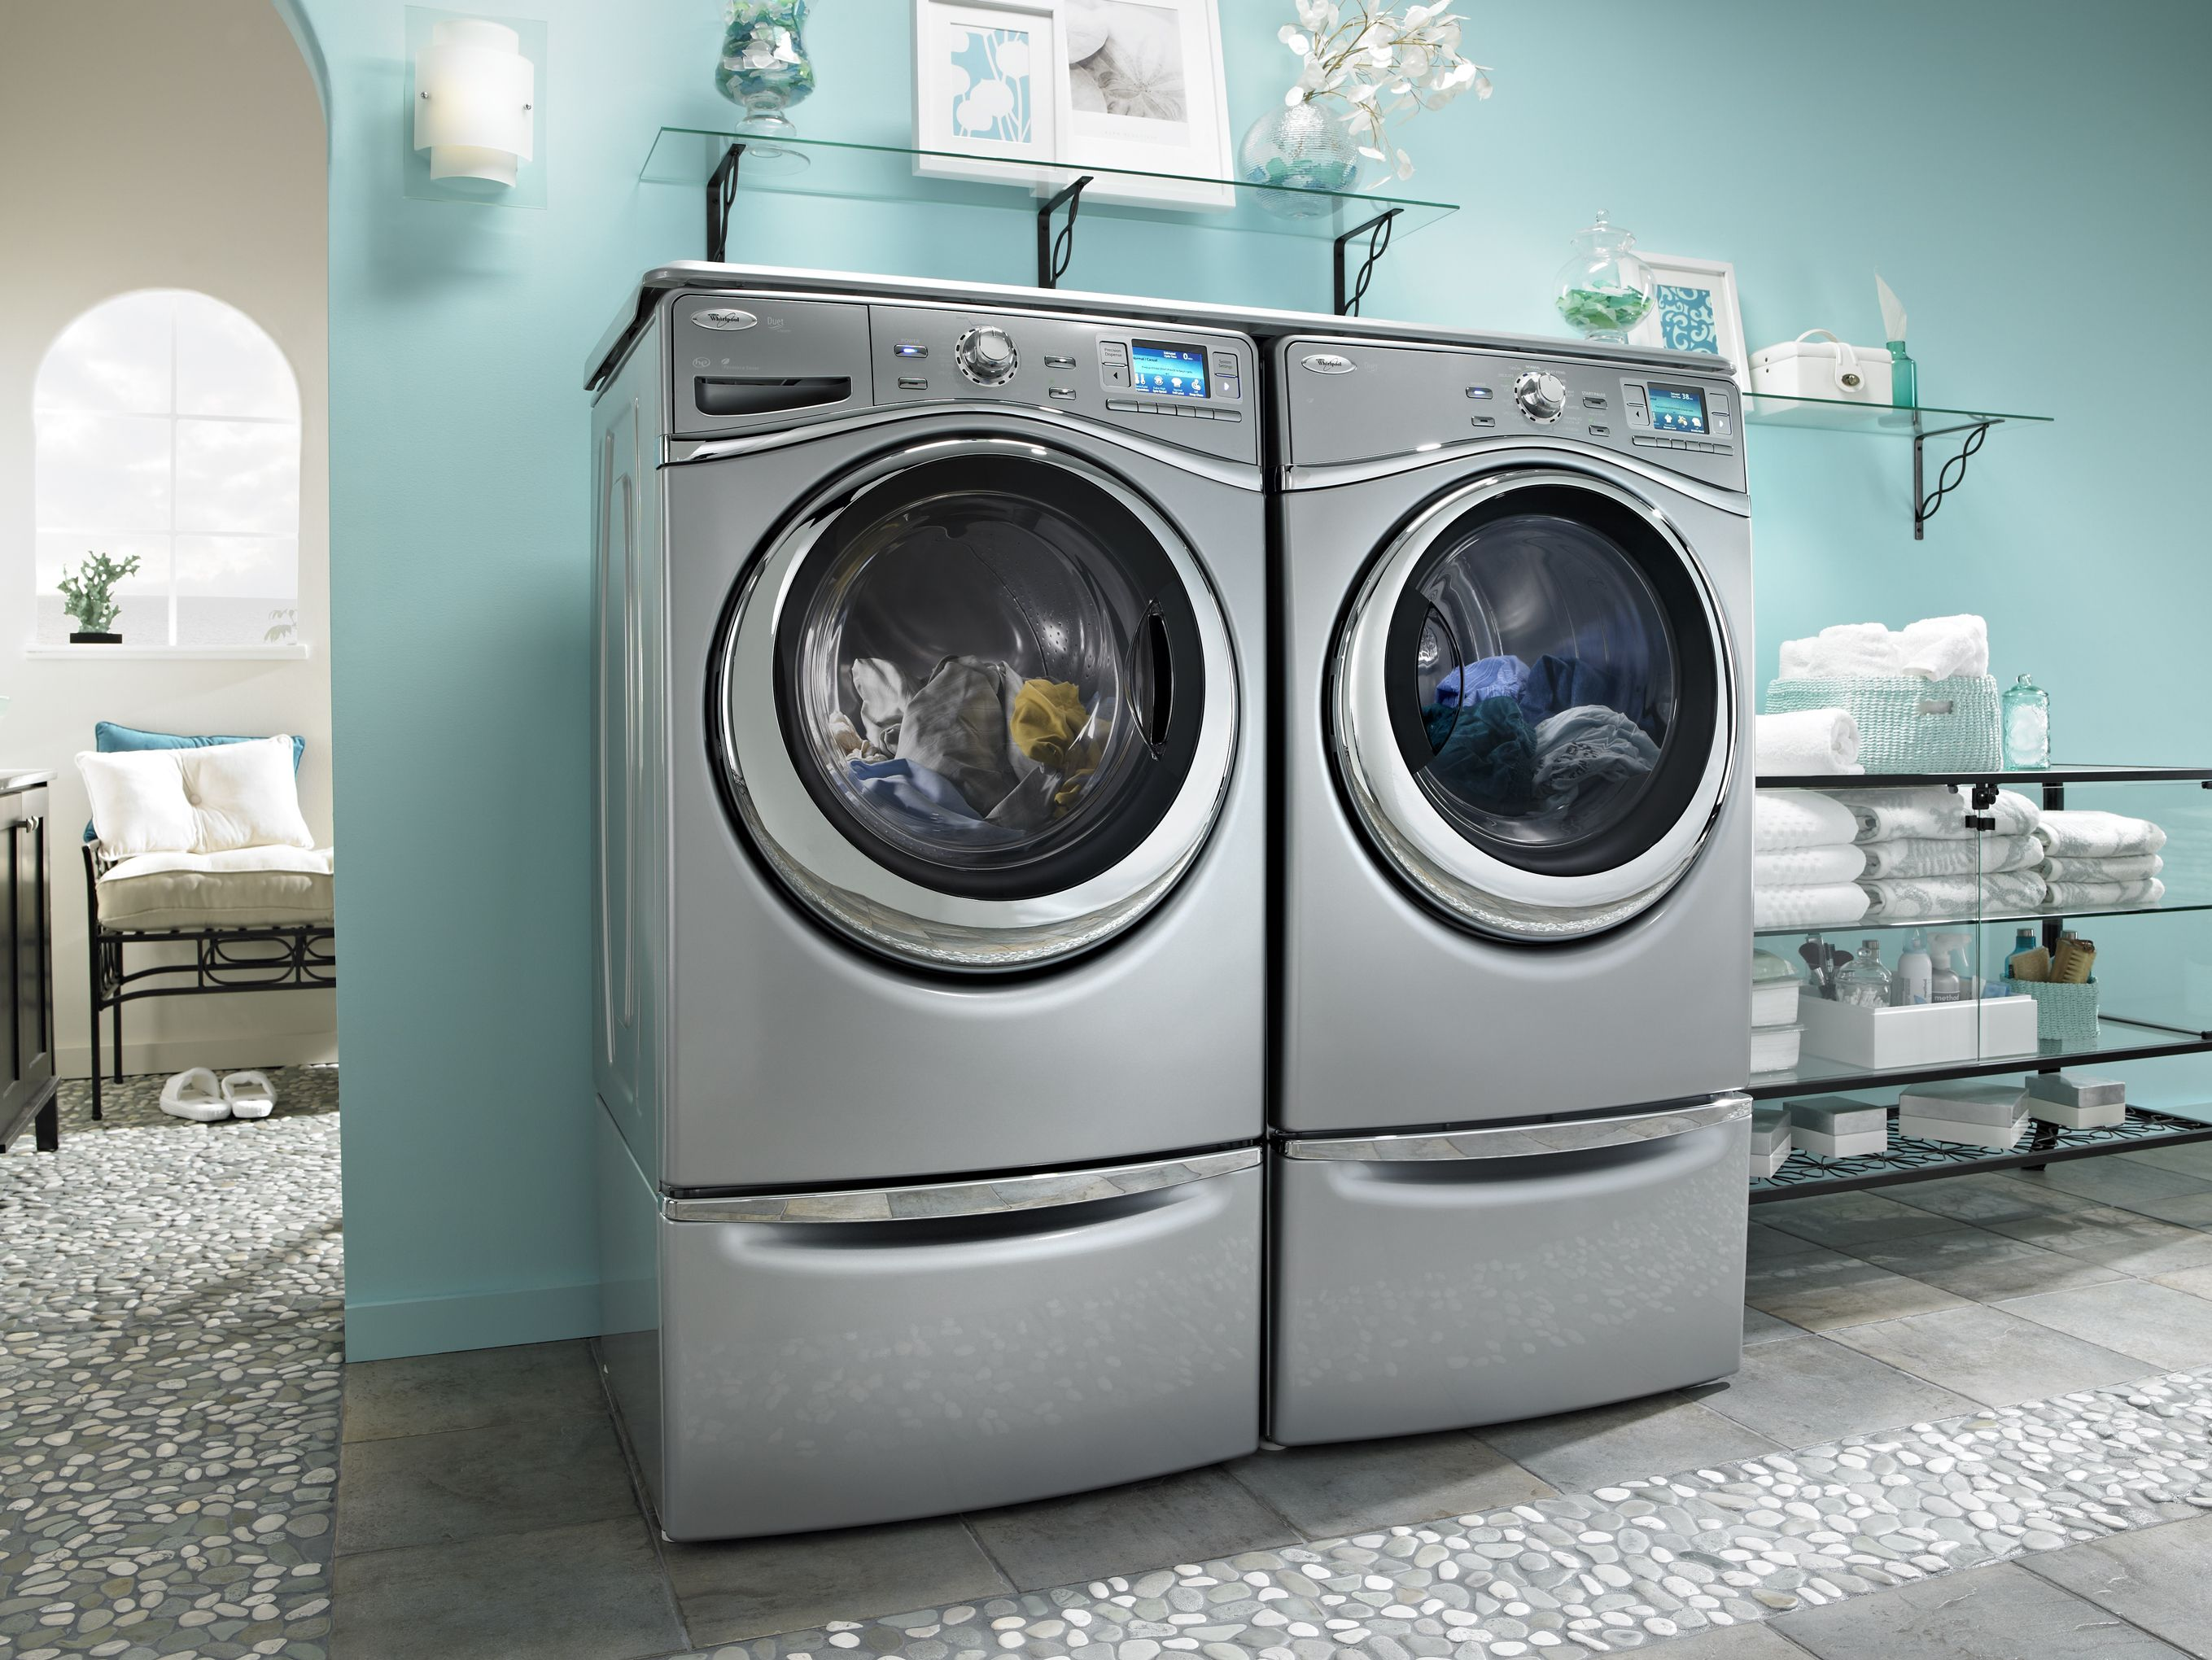 vs machine buying duet best guide washing whirlpool pedestal reports machines consumer cro